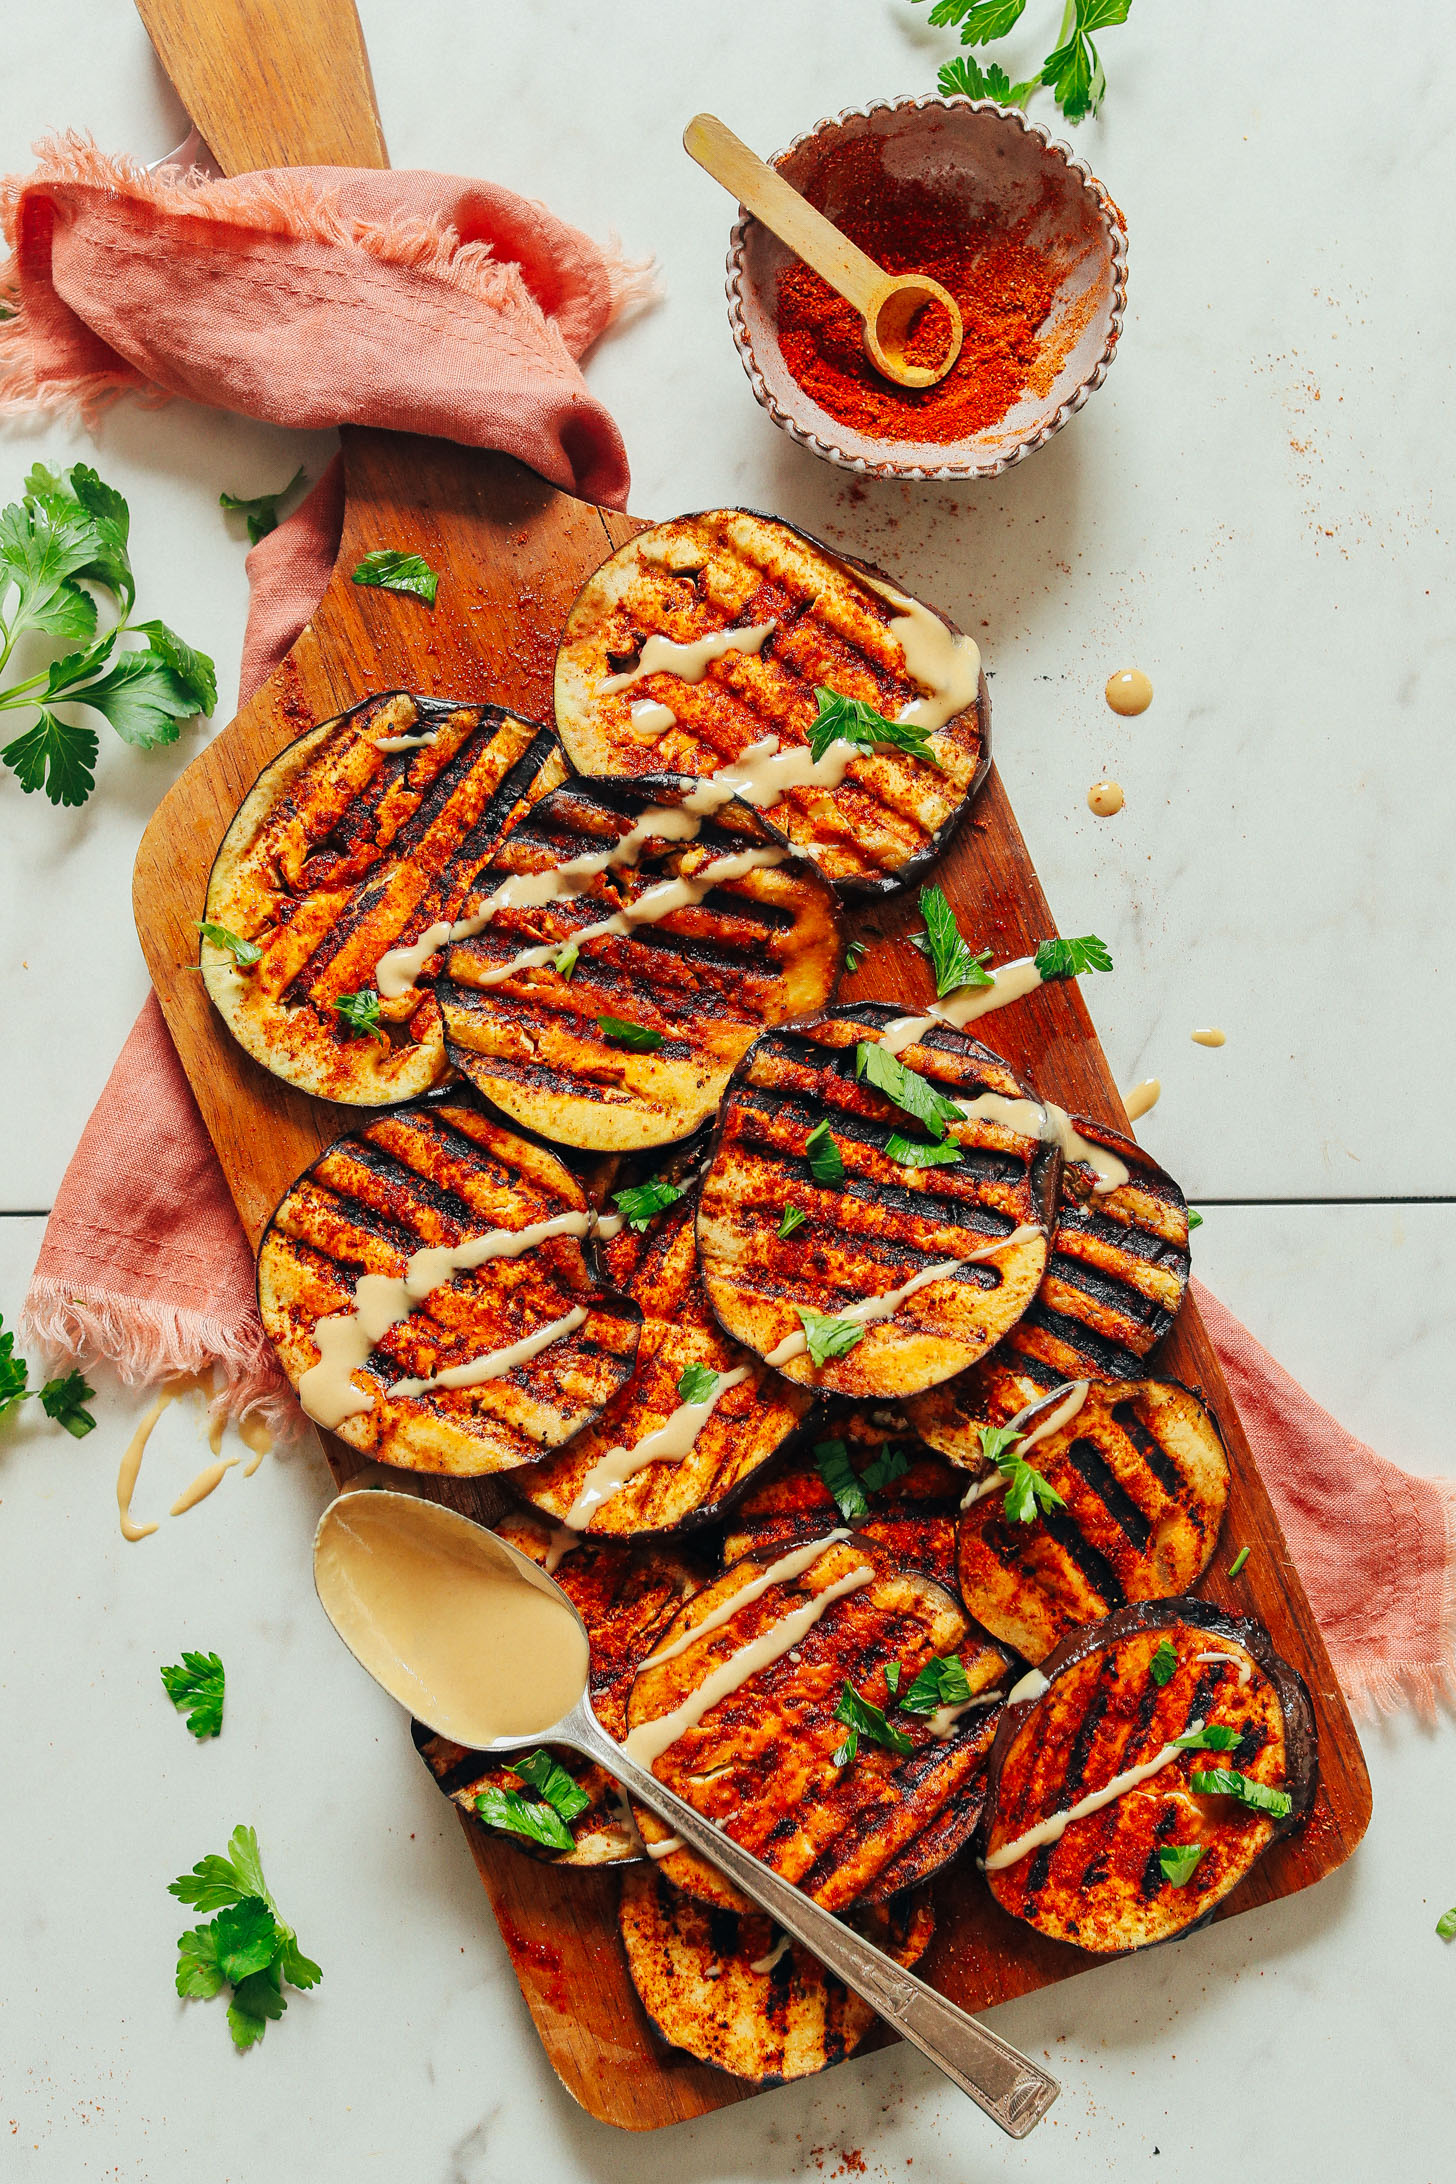 An overhead shot of simple grilled eggplant slices drizzled with tahini dressing and spice blend.